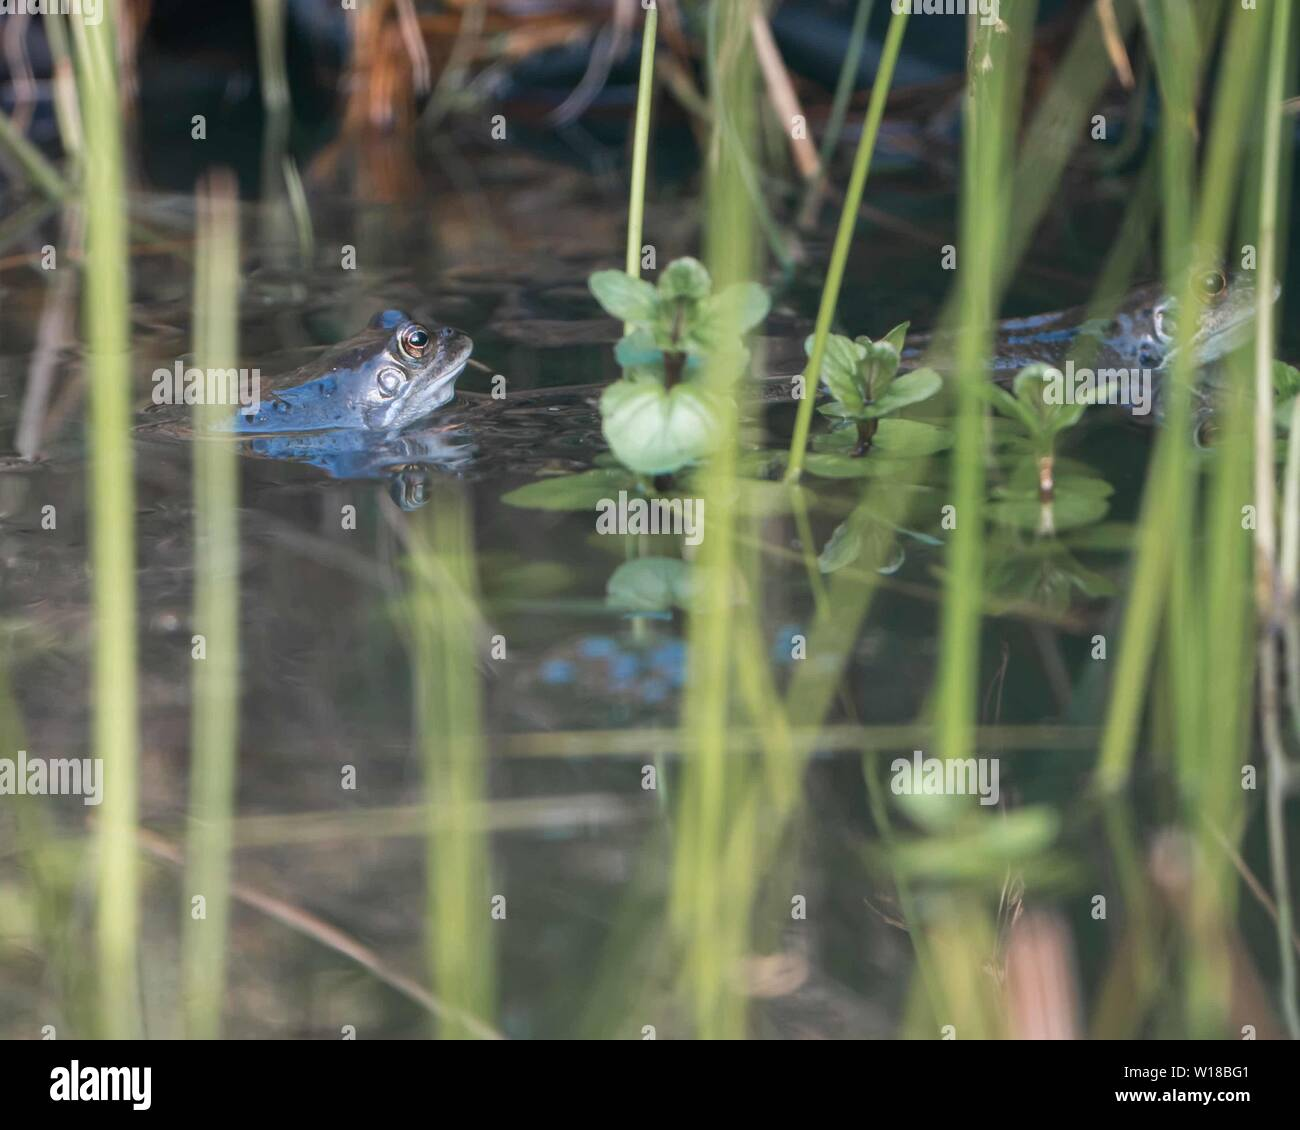 Common frog (Rana temporaria) in garden pond - Stock Image